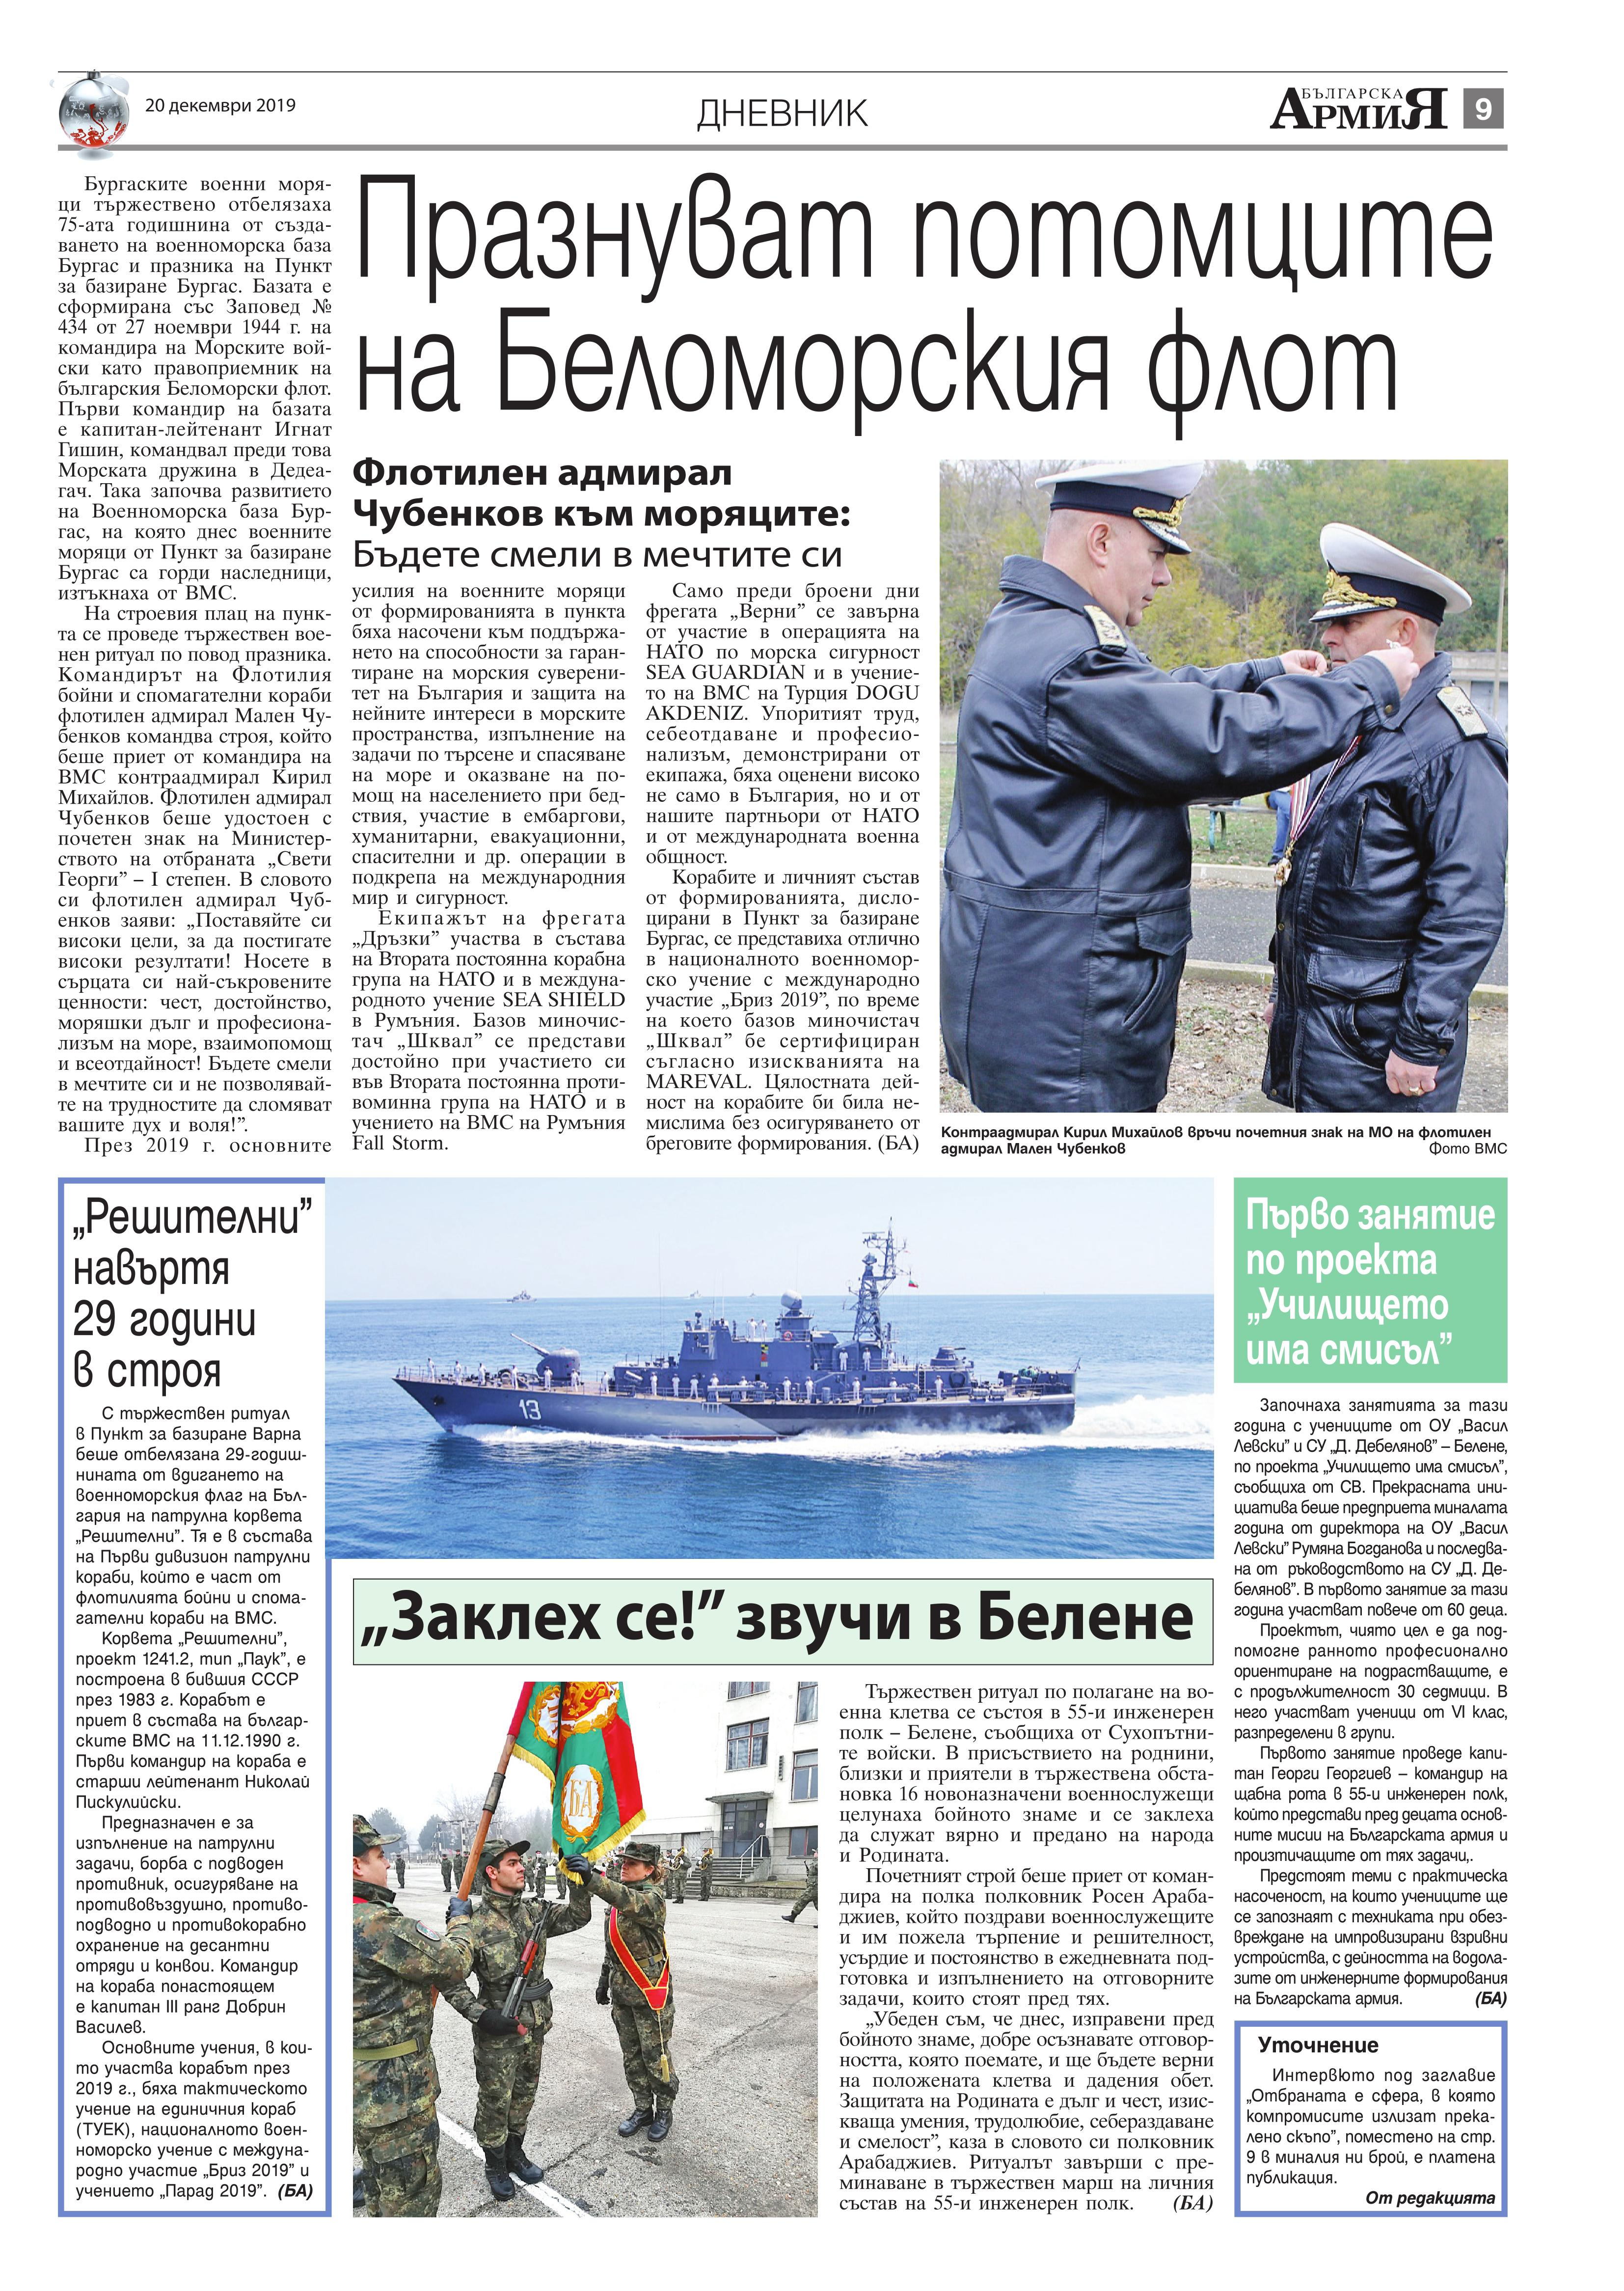 https://armymedia.bg/wp-content/uploads/2015/06/09.page1_-118.jpg